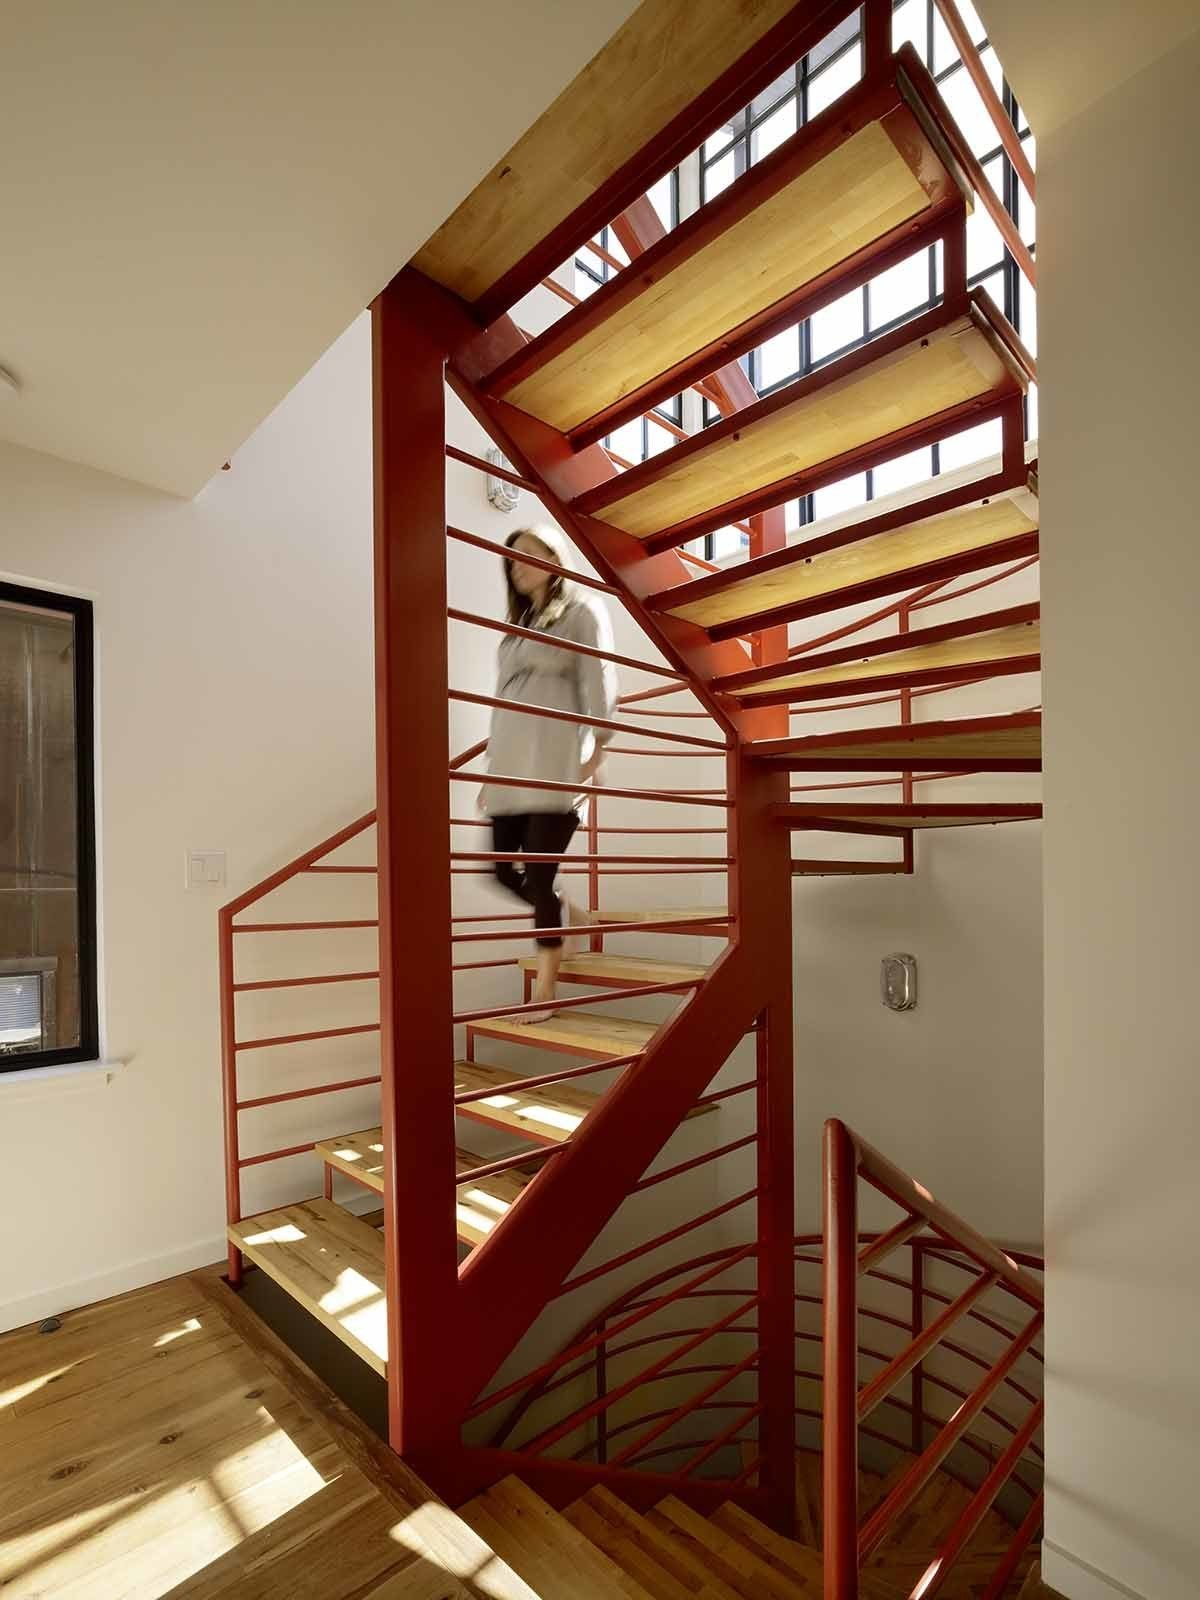 "Fabricated by Stocklin Iron Works and designed by Nebolon, the orange staircase features steel railings and treads made from IKEA wood butcher blocks. ""We designed the open staircase to make the trip to the second floor fun,"" the architect says. Tagged: Staircase, Metal Railing, and Wood Tread.  Best Photos from Like a Loft on Water"